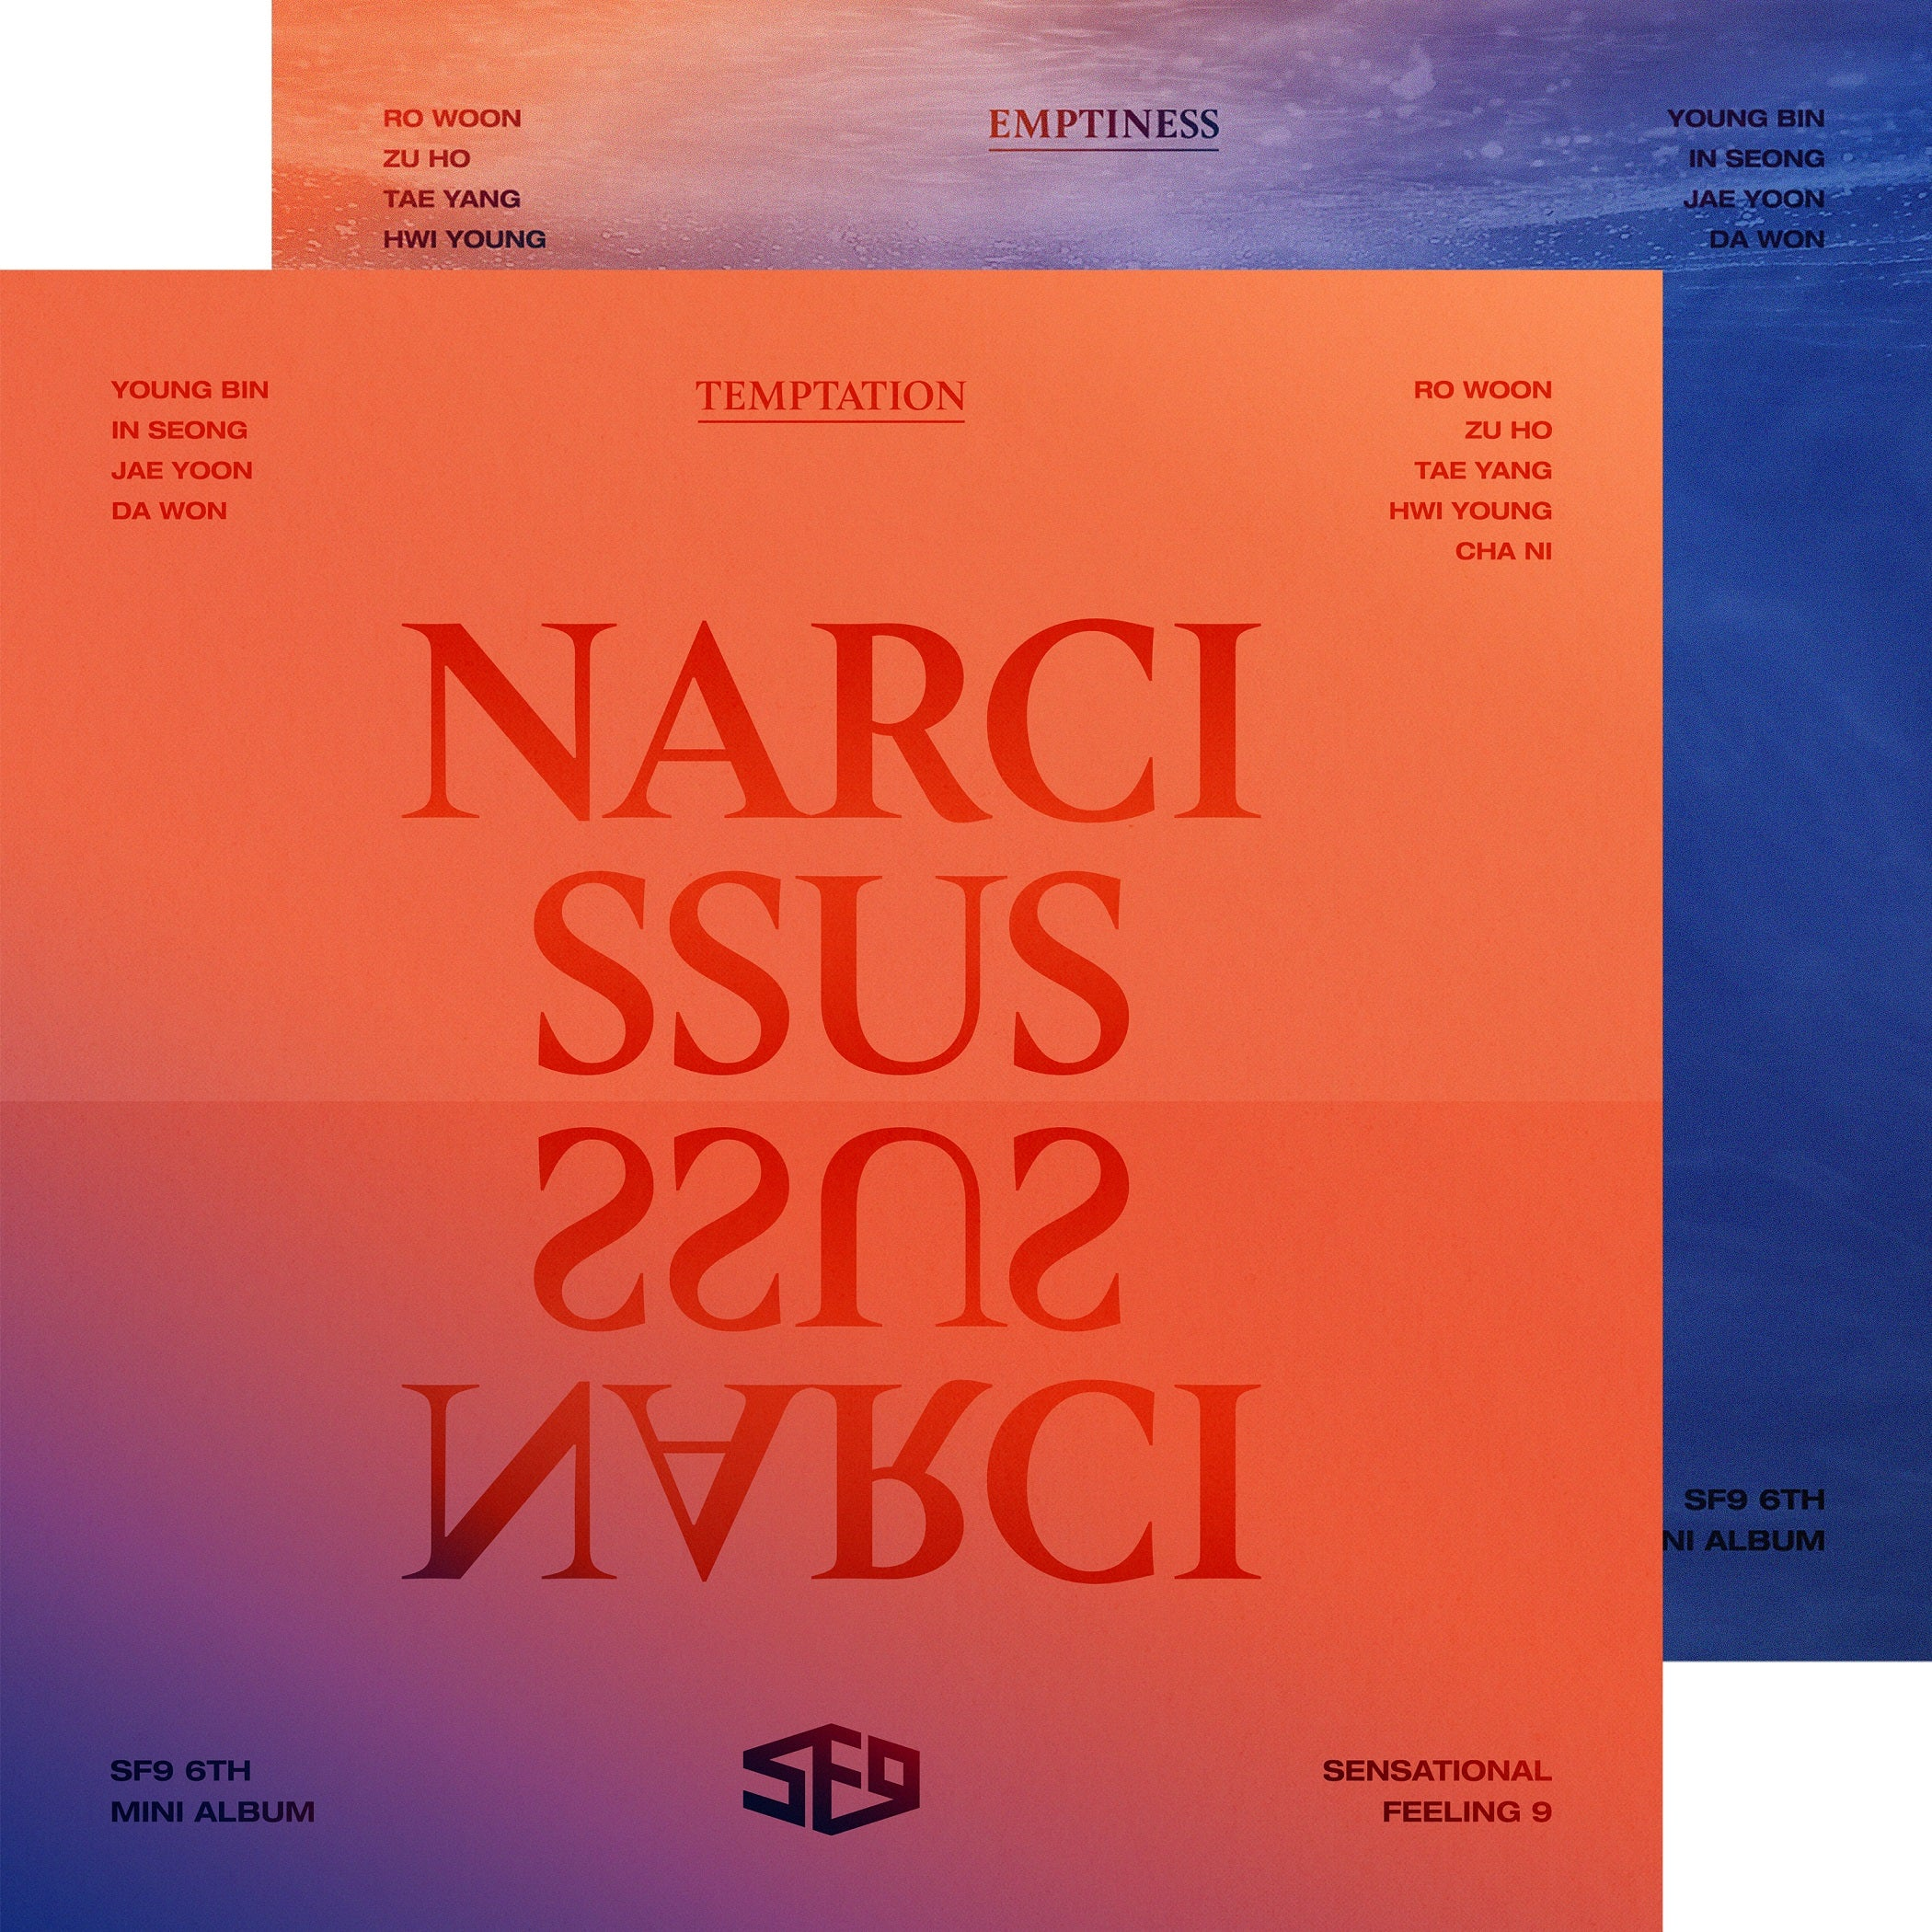 SF9 Narcissus Temptation Emptiness